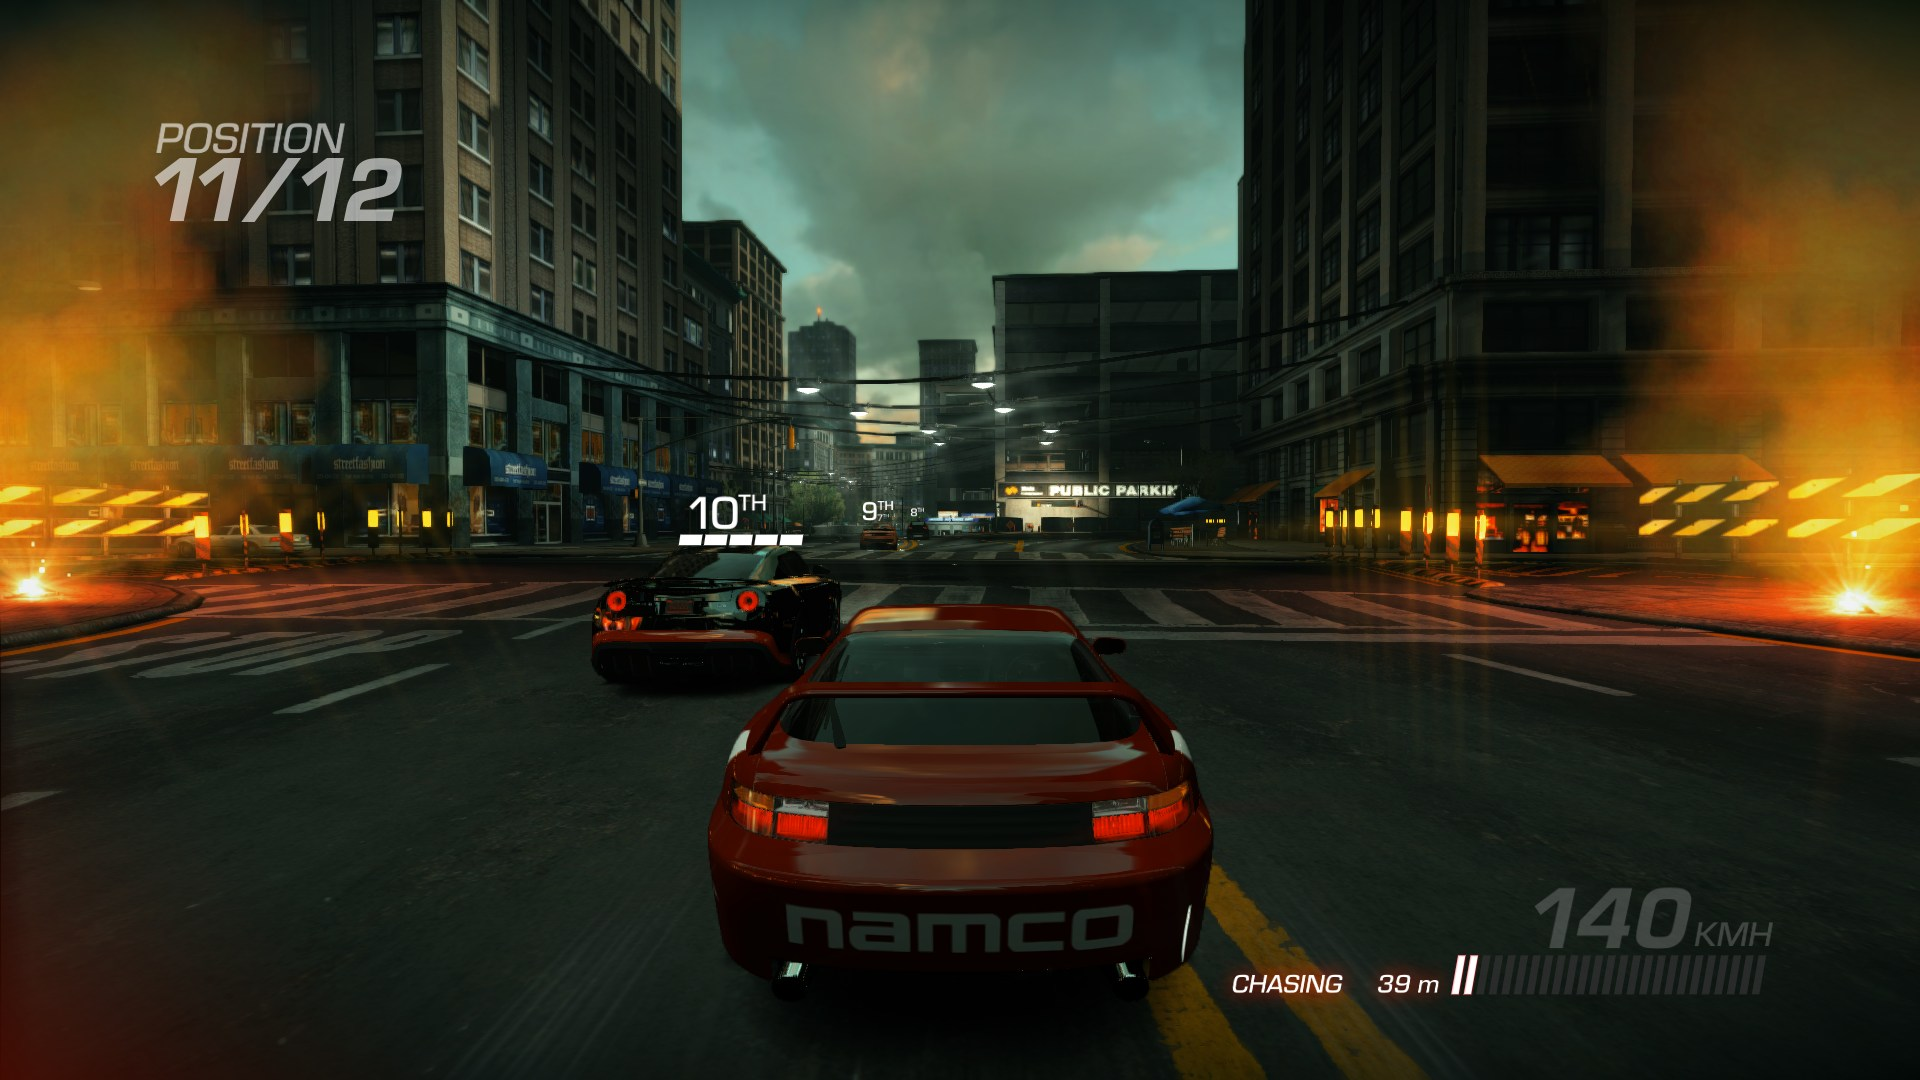 Ridge Racer: Unbounded PC Performance Analysis - DSOGaming